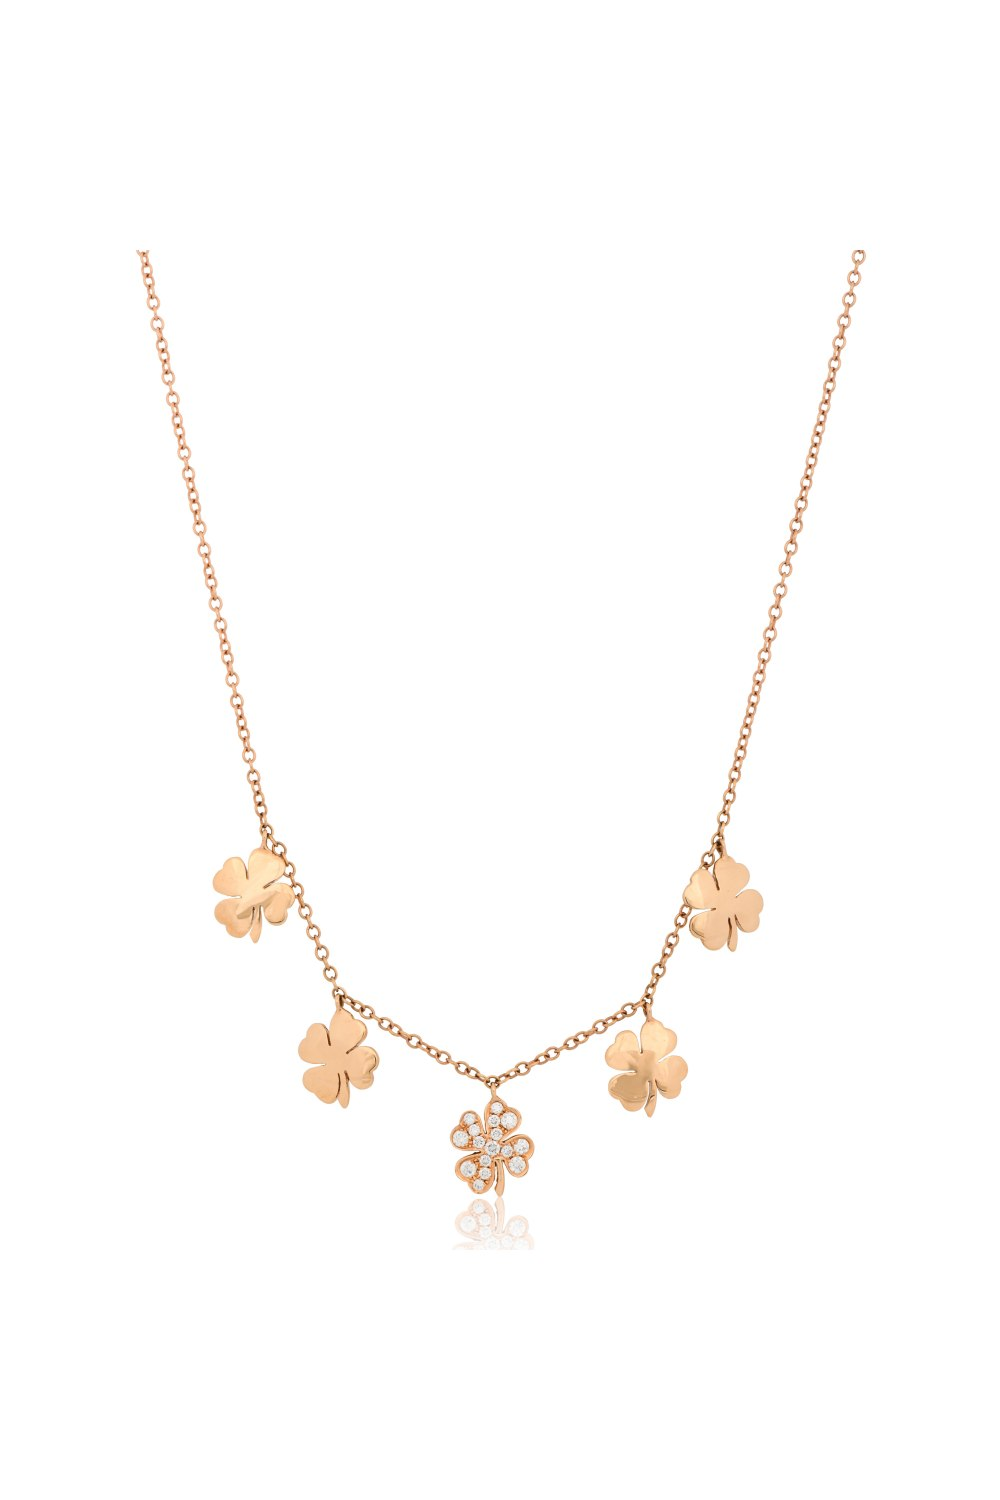 Kessaris-Diamond Lucky Charm Necklace